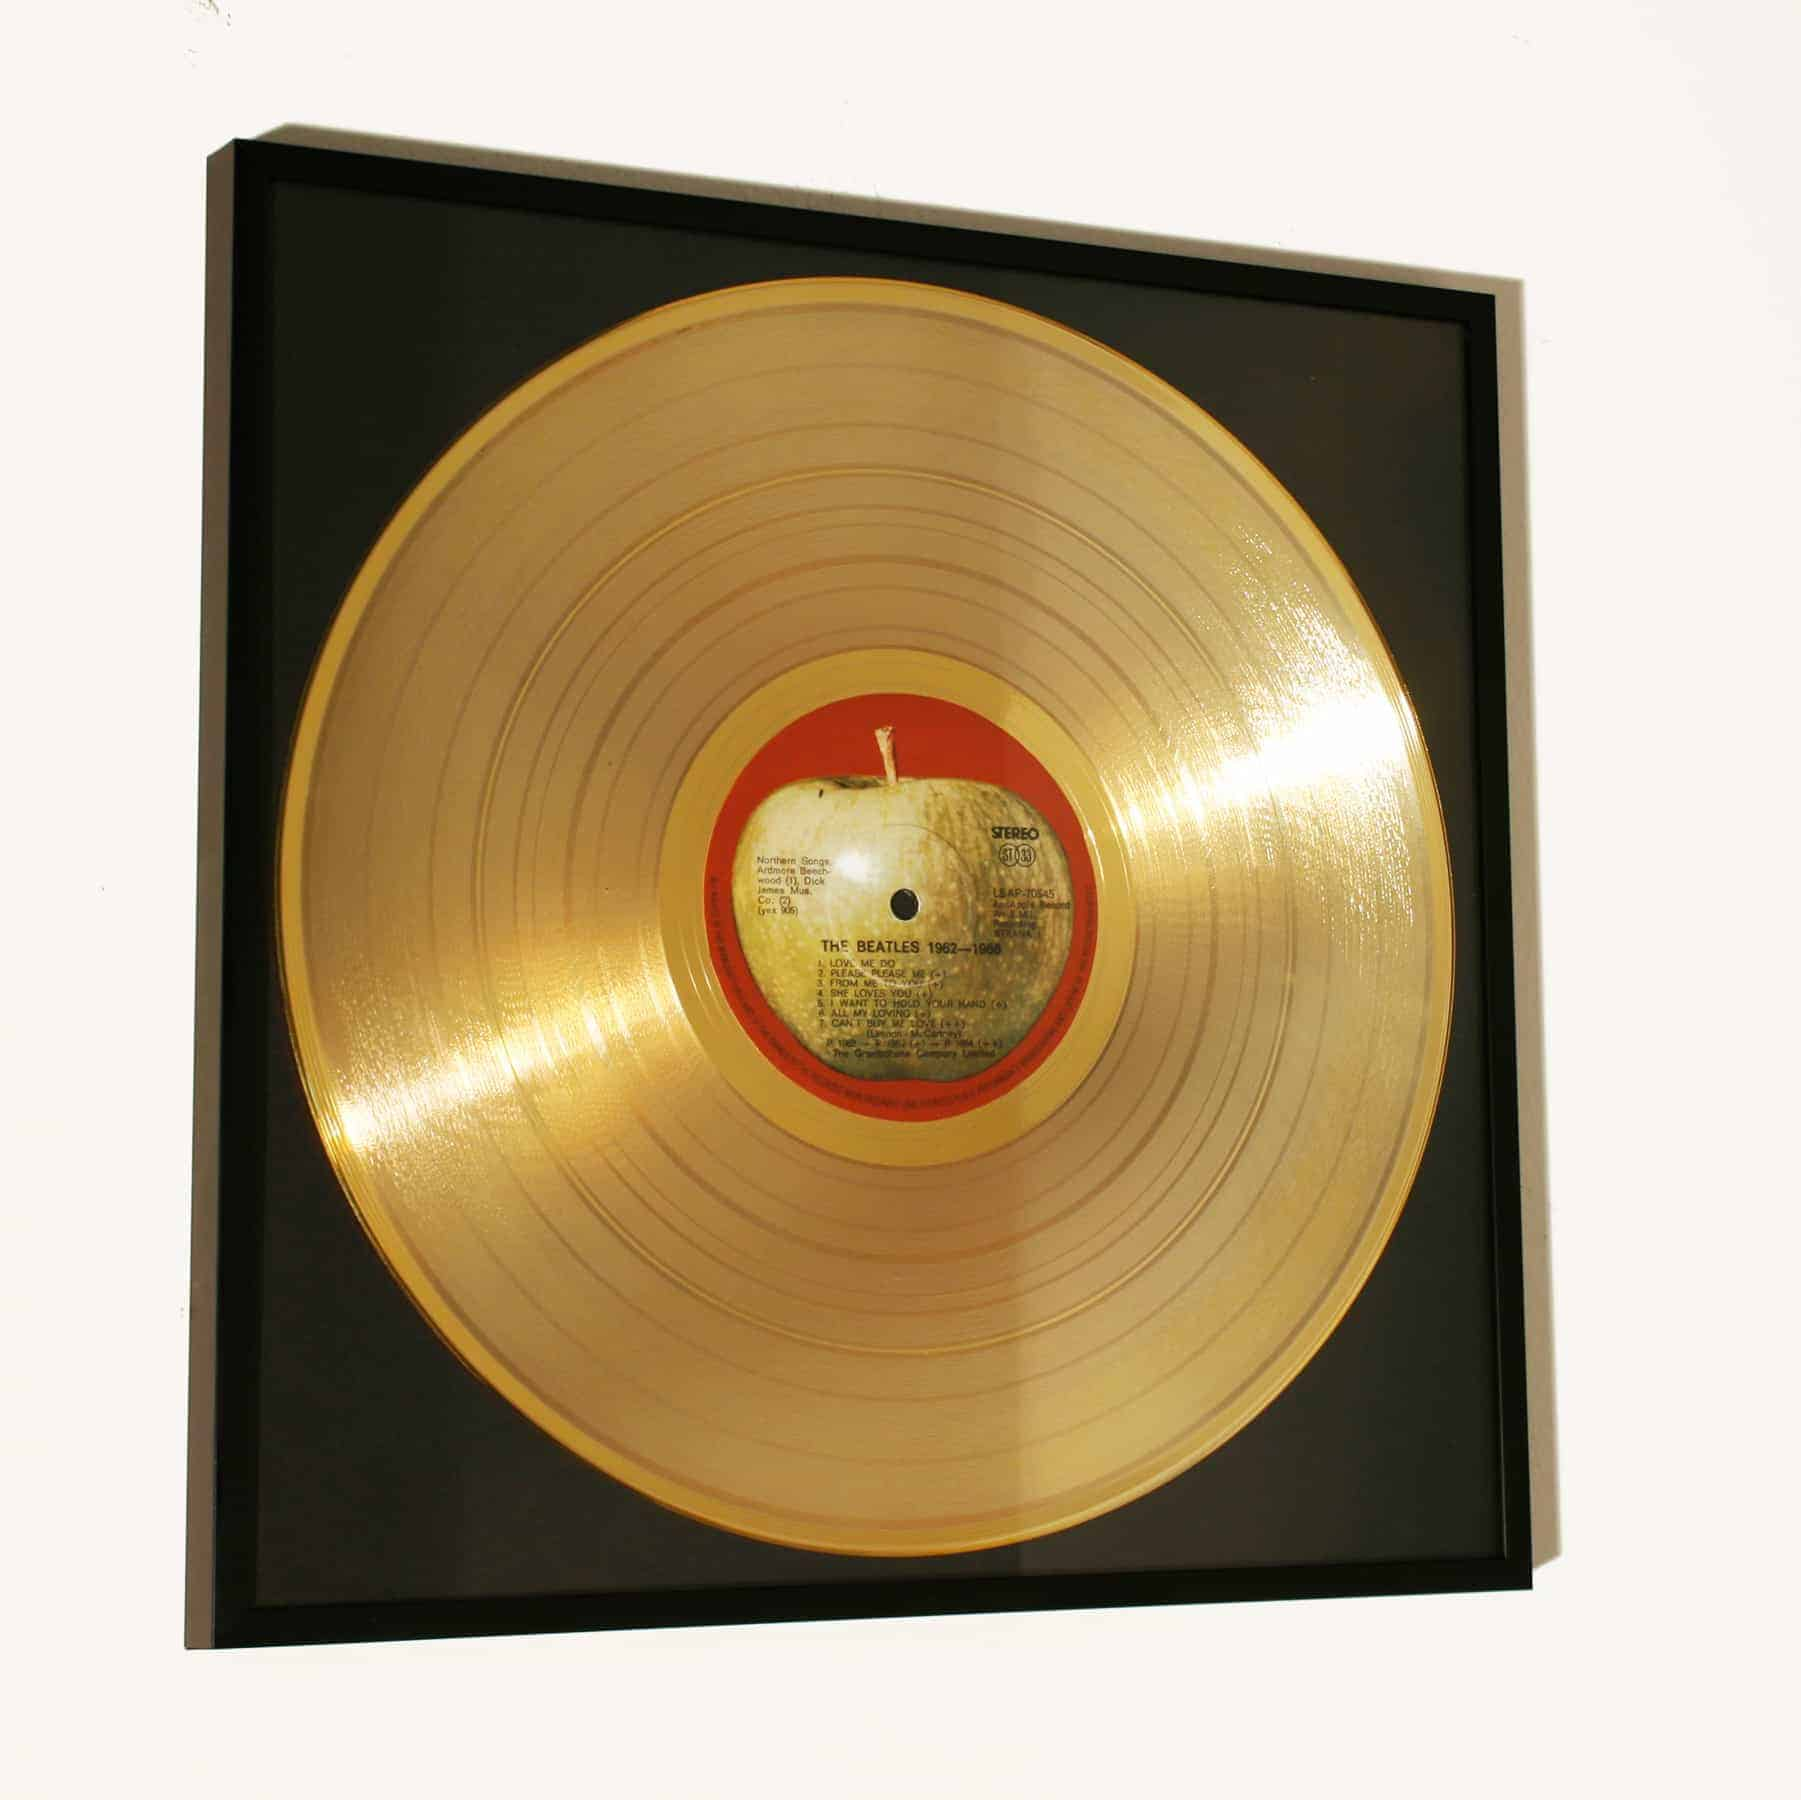 MADONNA – LIKE A VIRGIN: FRAMED GOLD PLATED VINYL RECORD